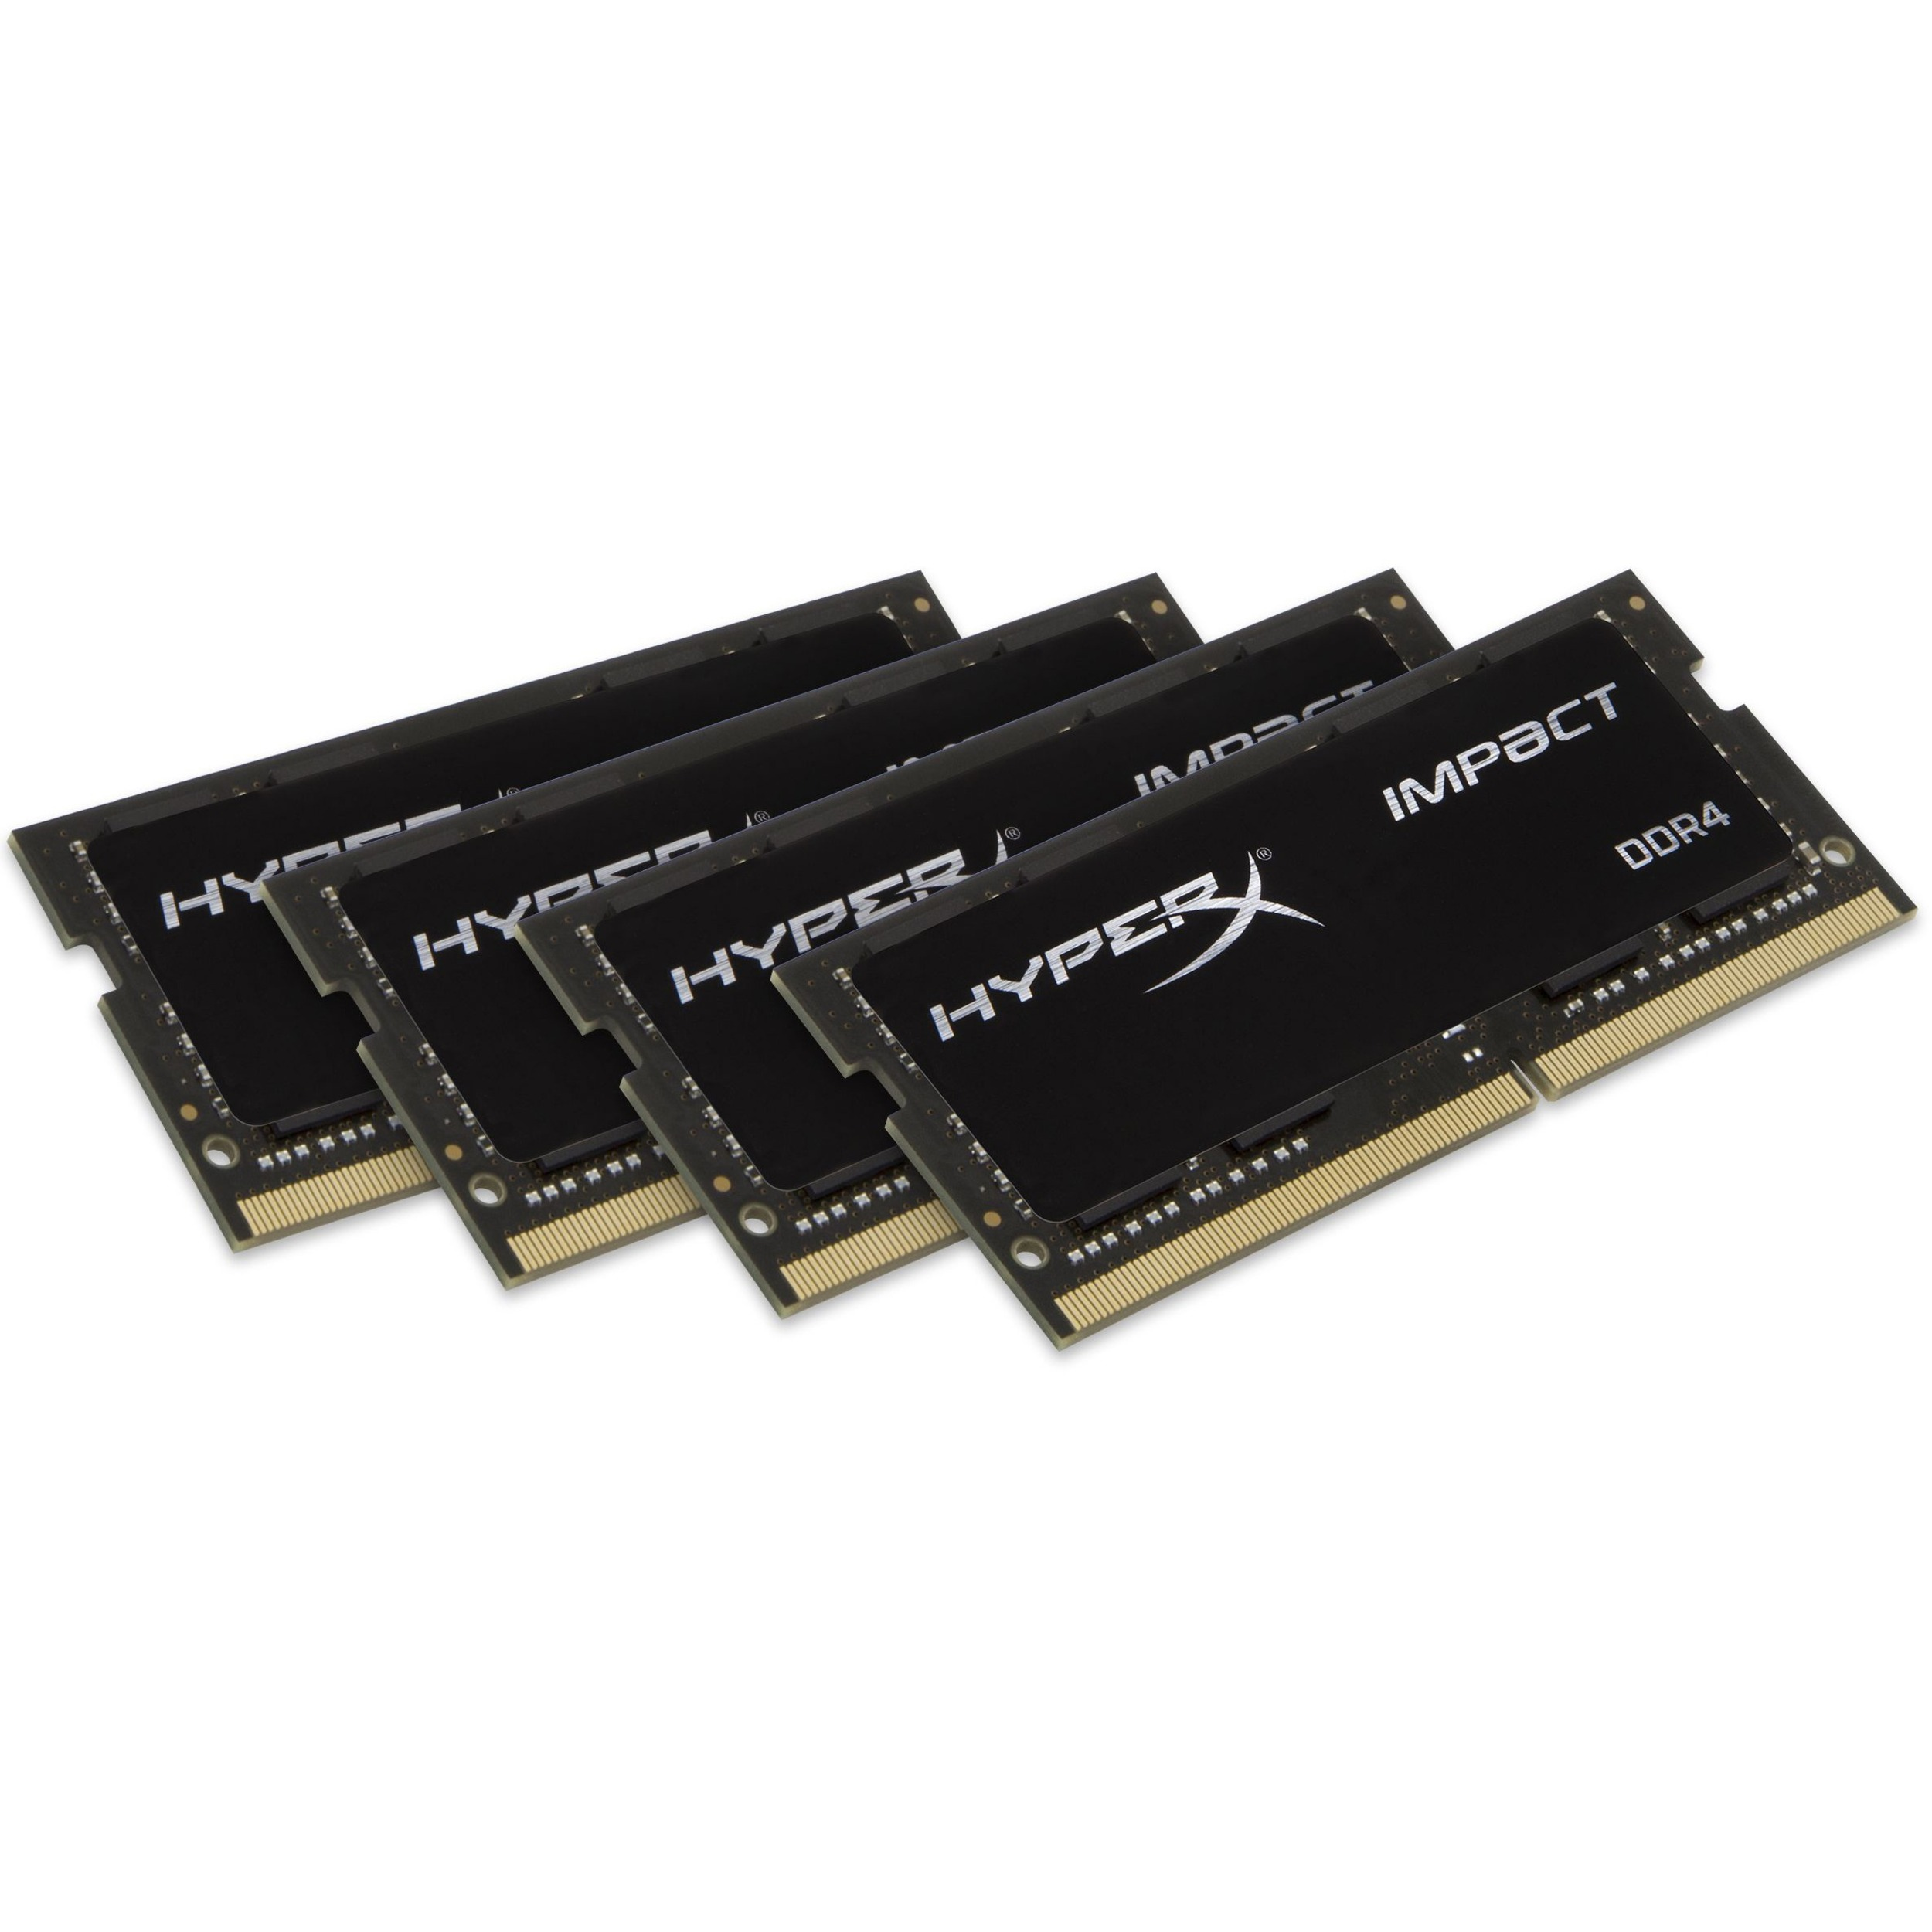 Kingston HyperX Impact RAM Module - 32 GB 4 x 8 GB - DDR4 SDRAM - 2400 MHz DDR4-2400/PC4-19200 - 1.20 V - Non-ECC - Unbuffered - CL15 - 260-pin - SoDIMM